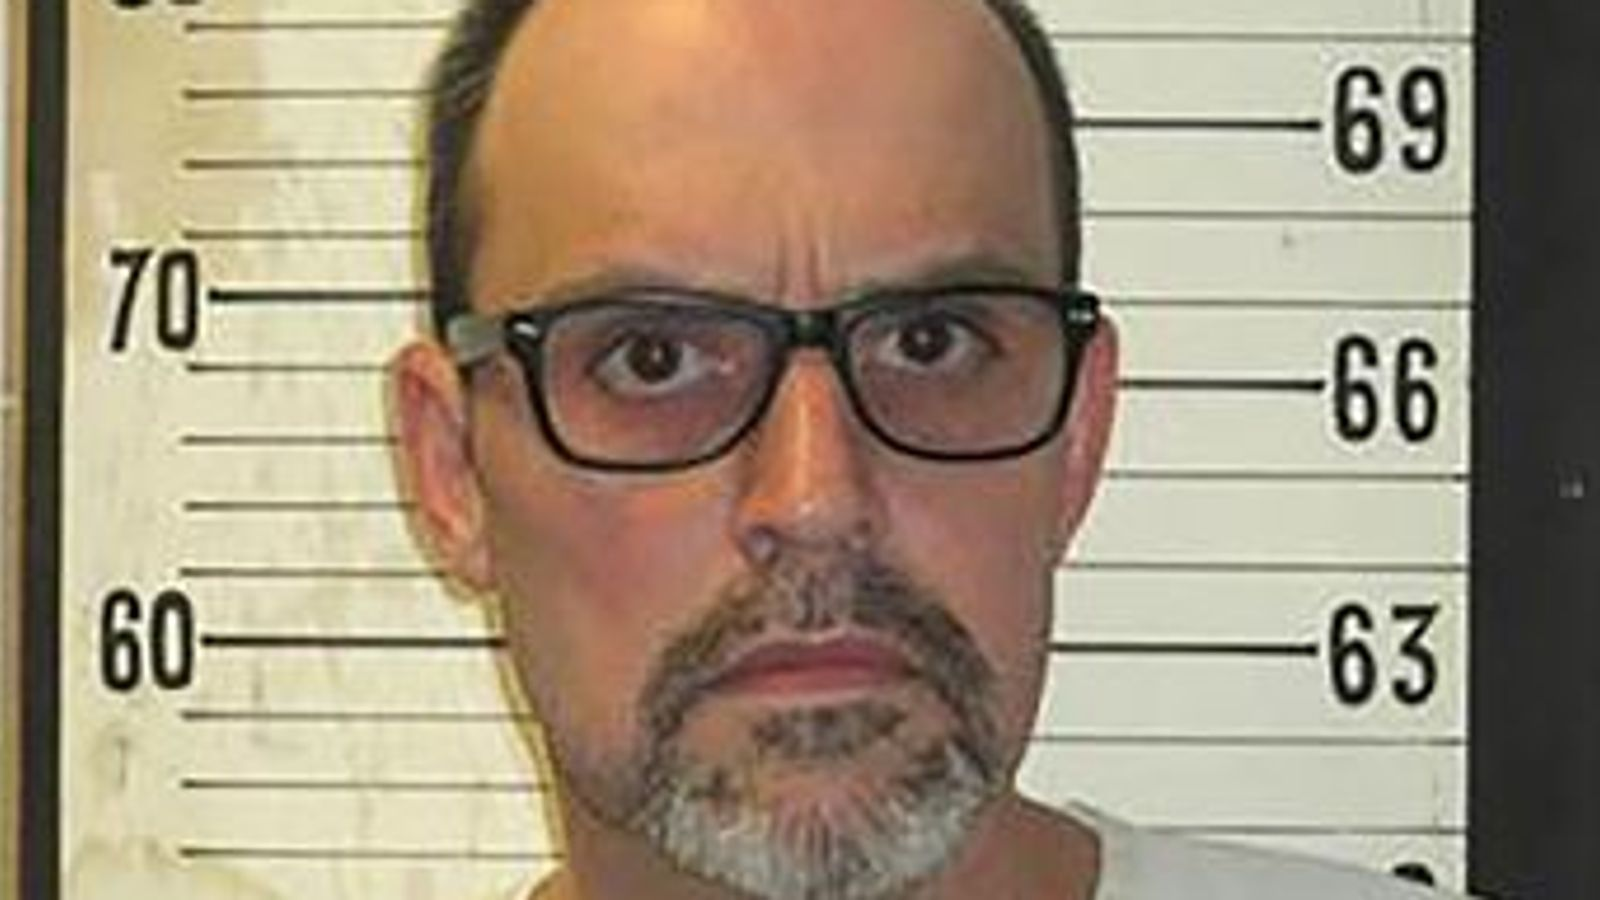 Blind killer who set fire to ex-girlfriend executed in US